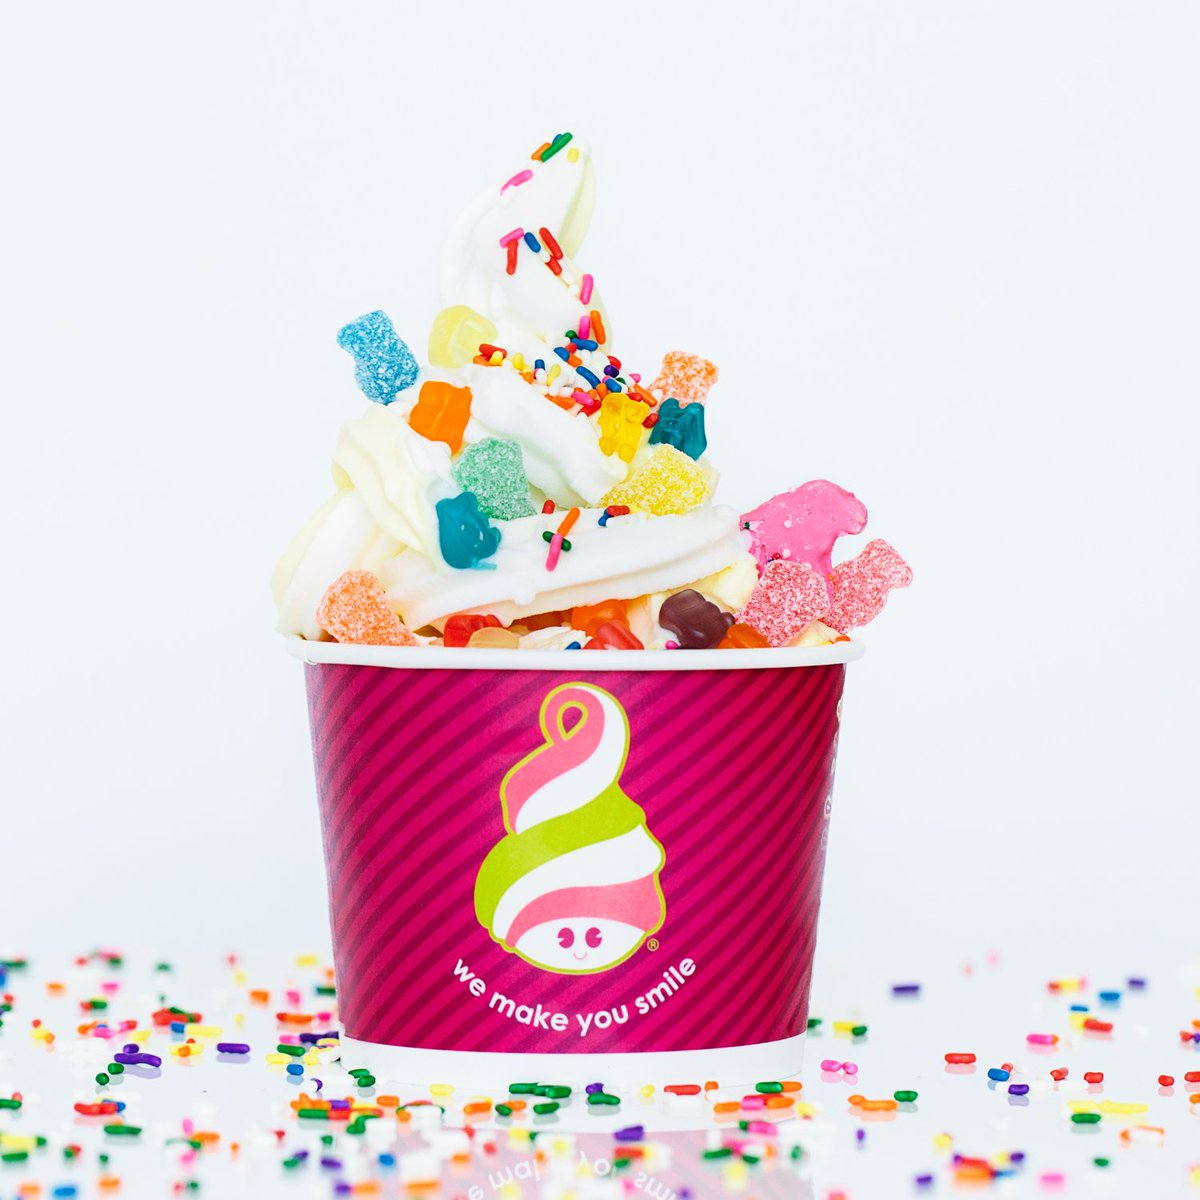 Have you planned your mix for National Frozen Yogurt Day?  It's coming up on Feb. 1st!  FREE froyo 4-7pm!  *US only https://t.co/FJsBnfiJse